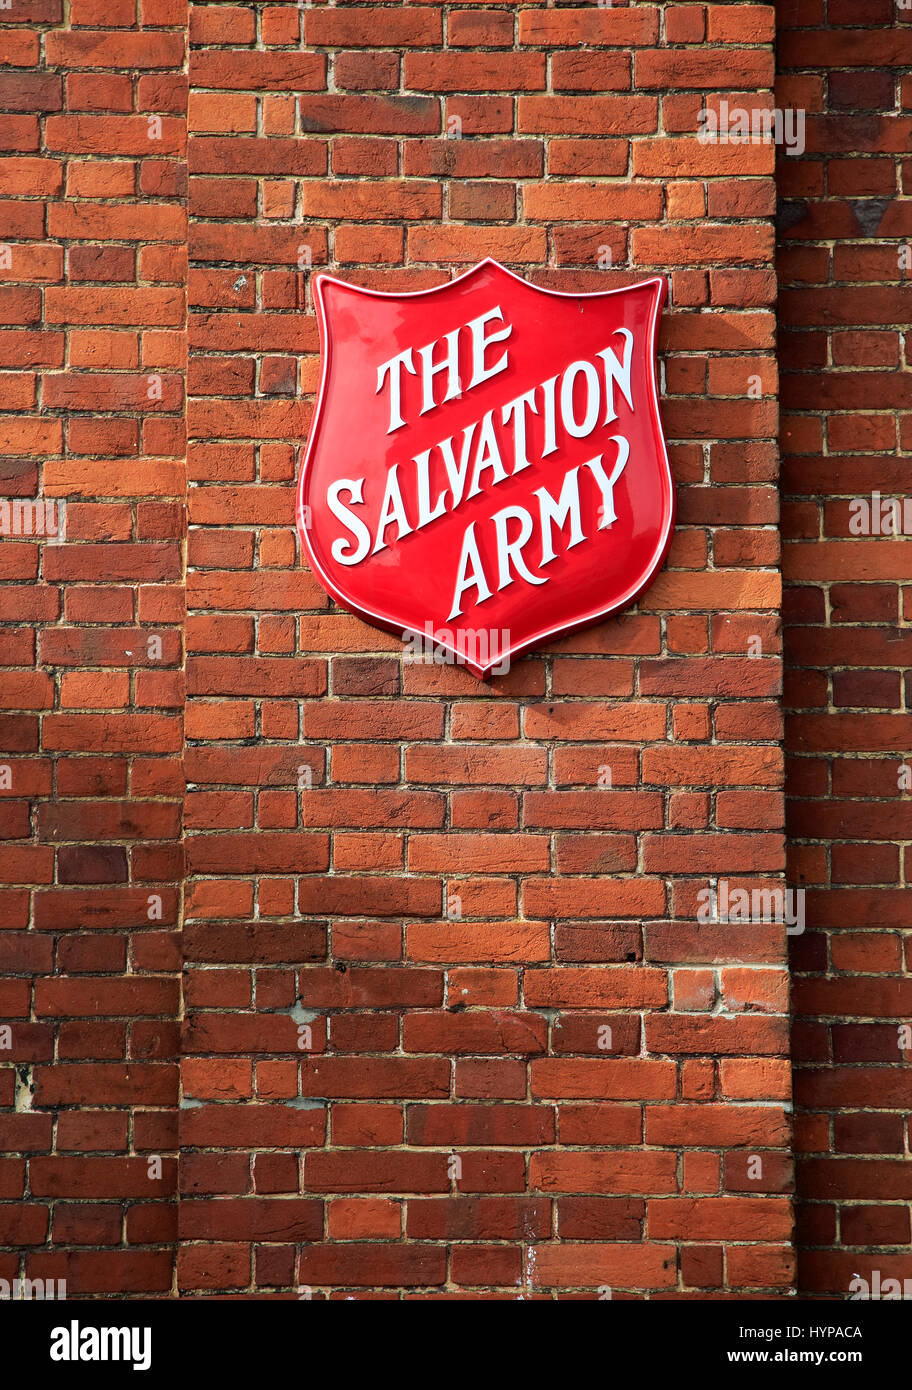 Salvation Army sign on brick wall,  Andover, Hampshire, England - Stock Image